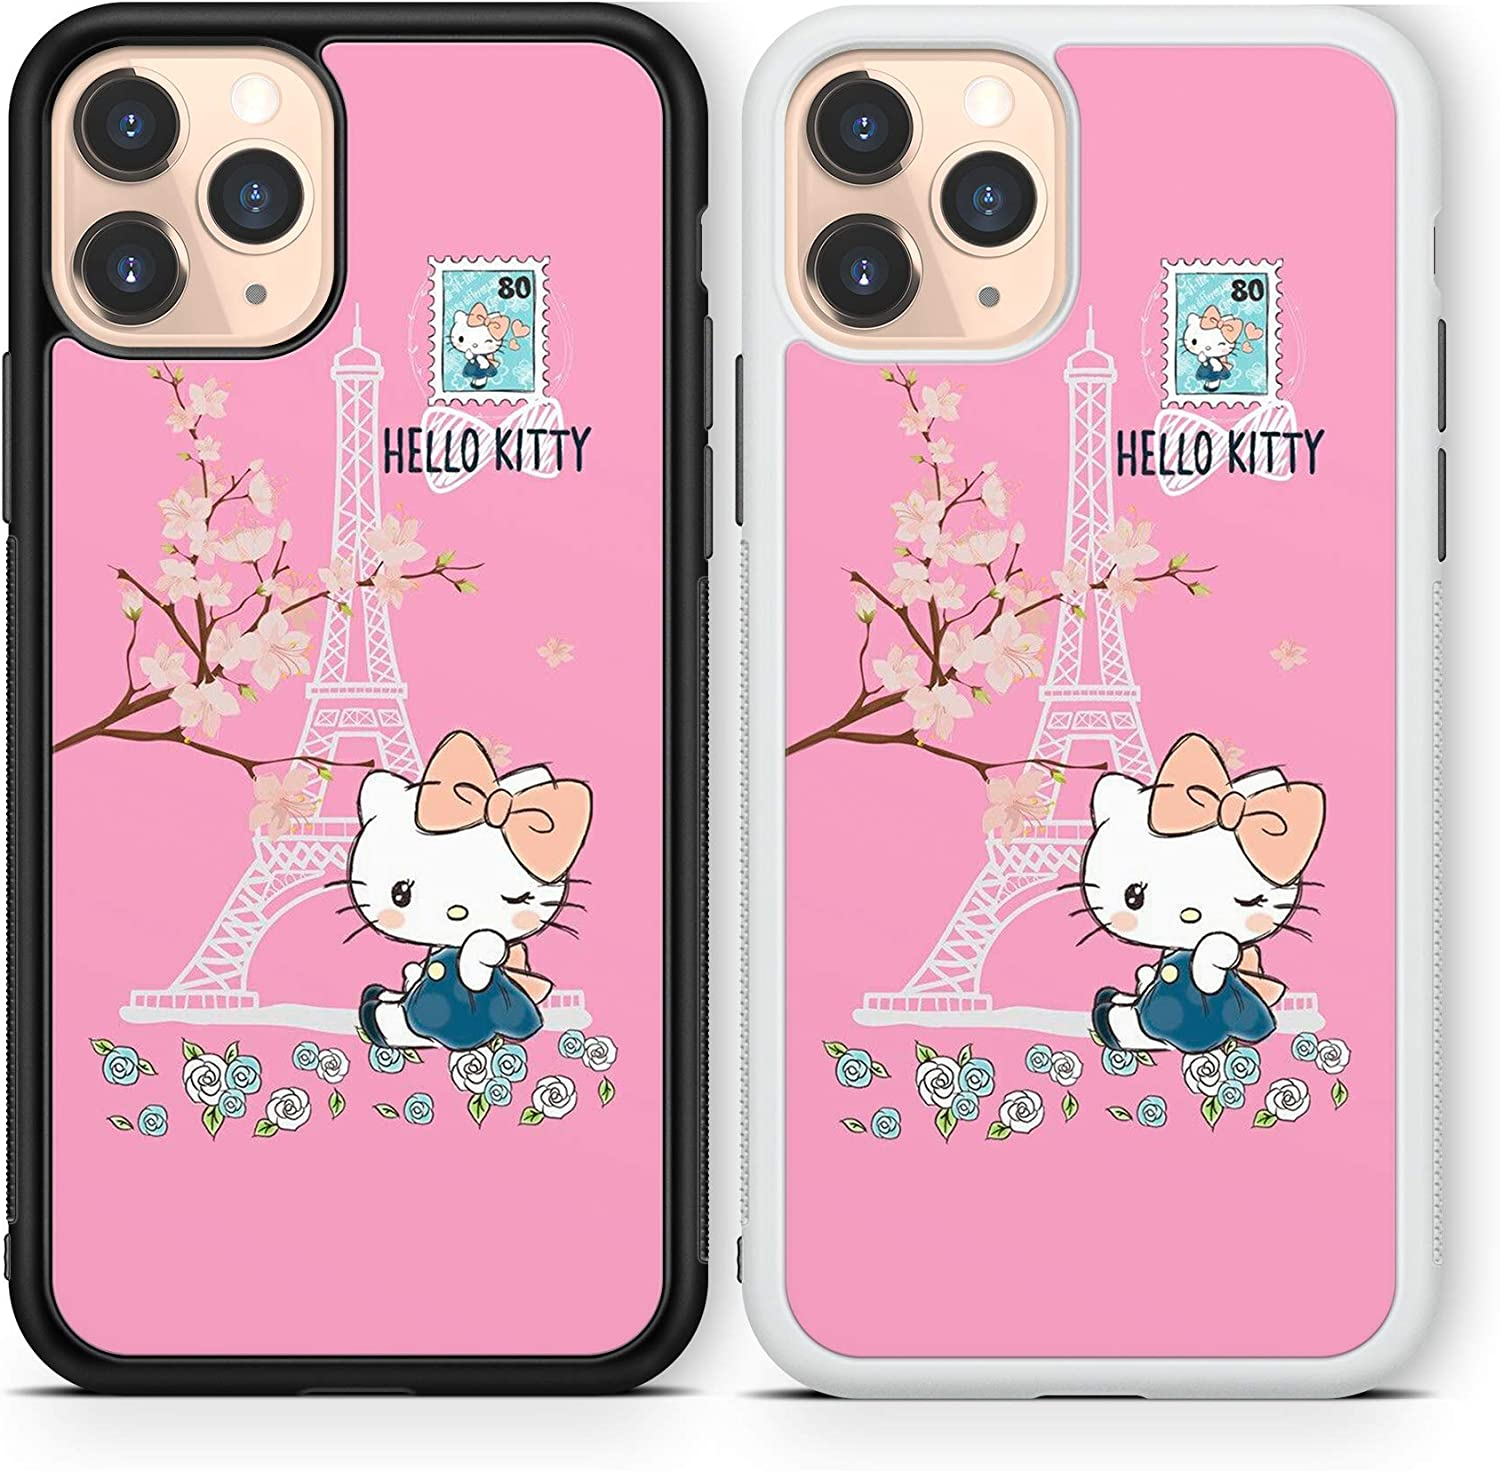 Hello Kitty case Compatible with iPhone 12 pro max Mini 11 XR X 7 8 SE Galaxy S20 Ultra S10 Note 10 20 TPU Cover SN151 (White, for iPhone 12/12 Pro)